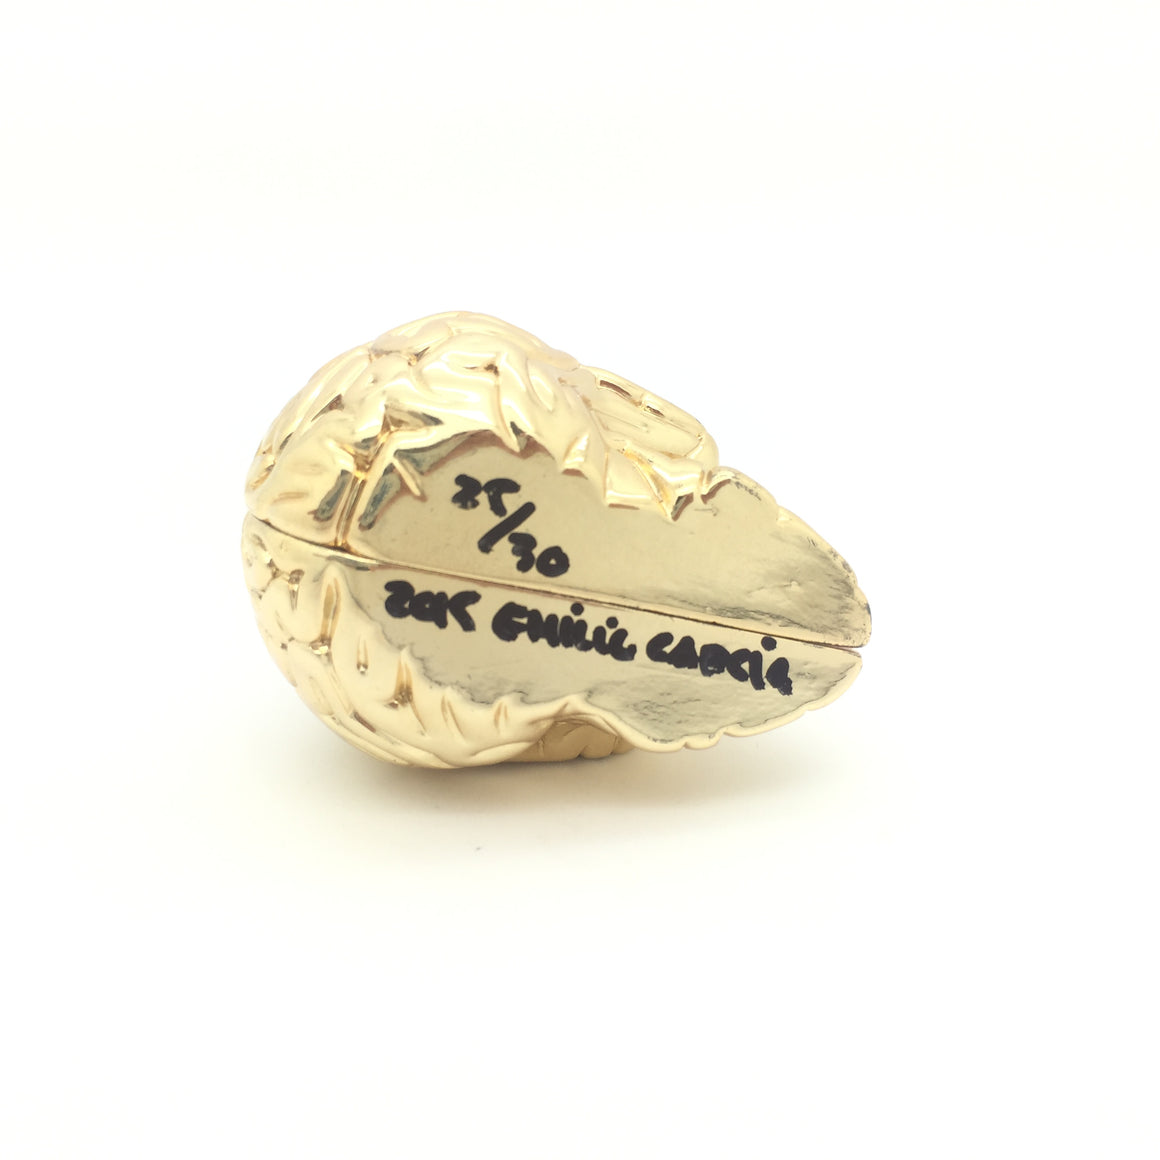 Mini Skull Brain 24k Gold Limited Numbered Edition by Emilio Garcia